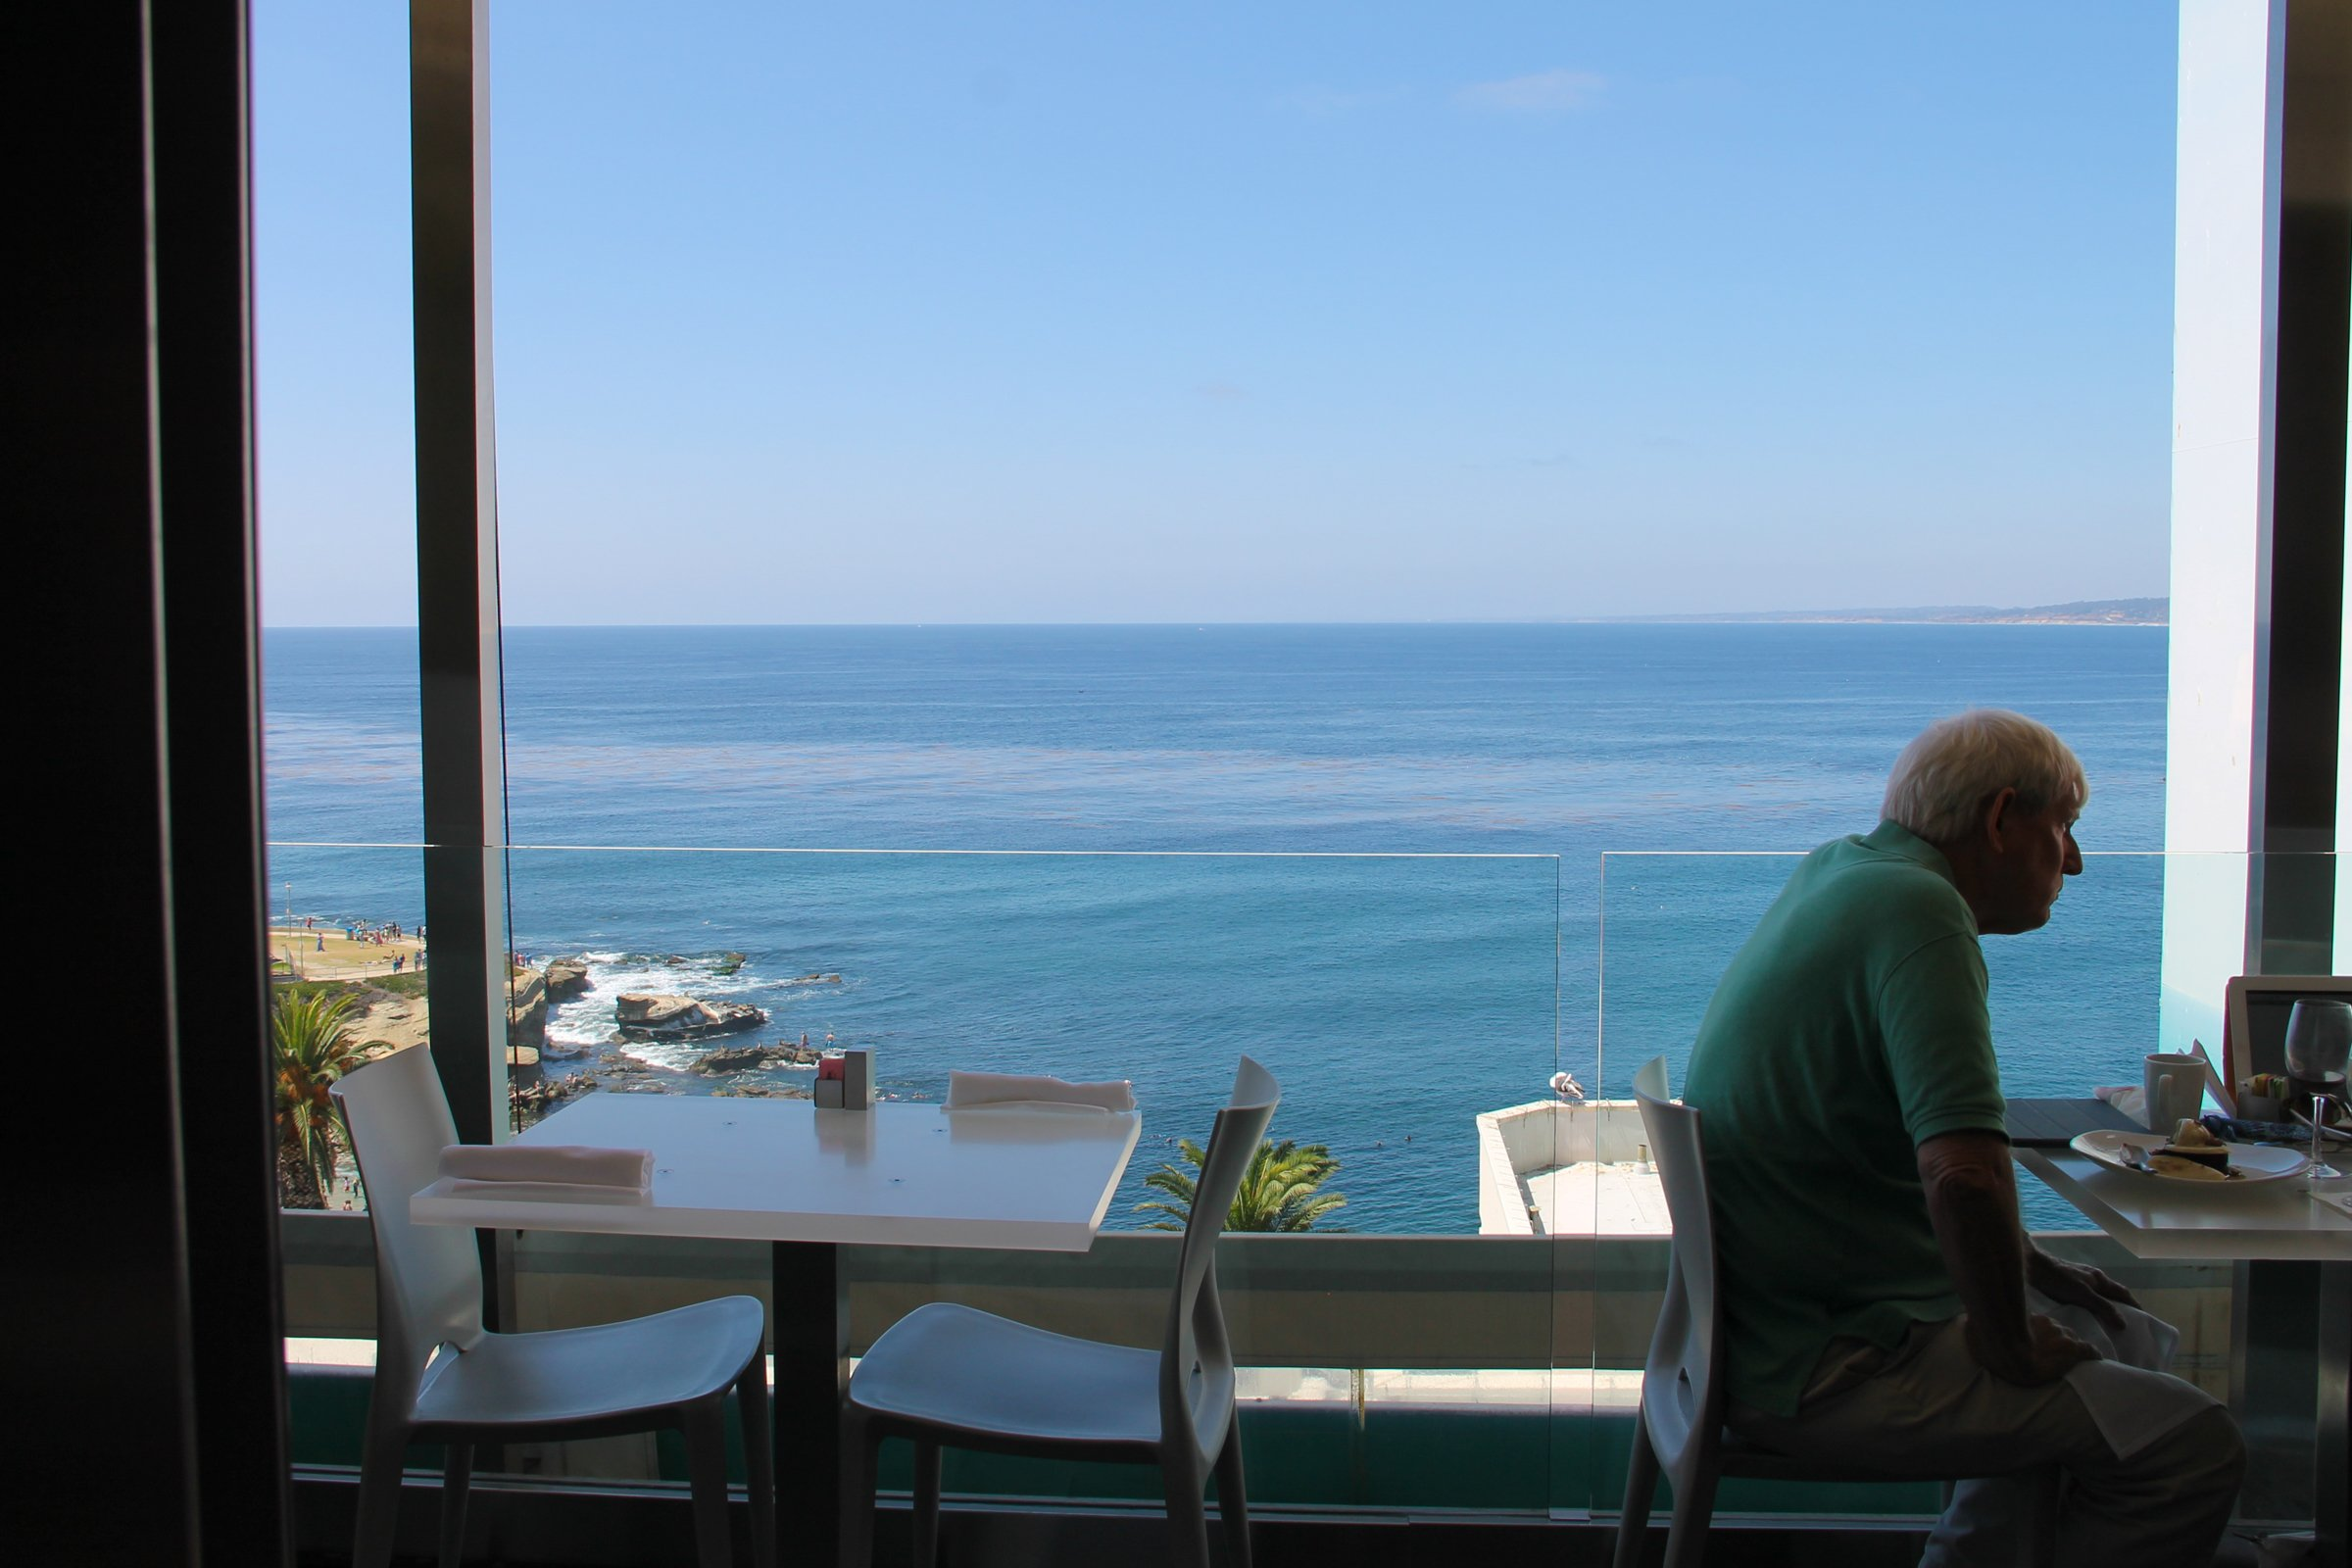 Elderly Man Sitting in Restaurant by Ocean